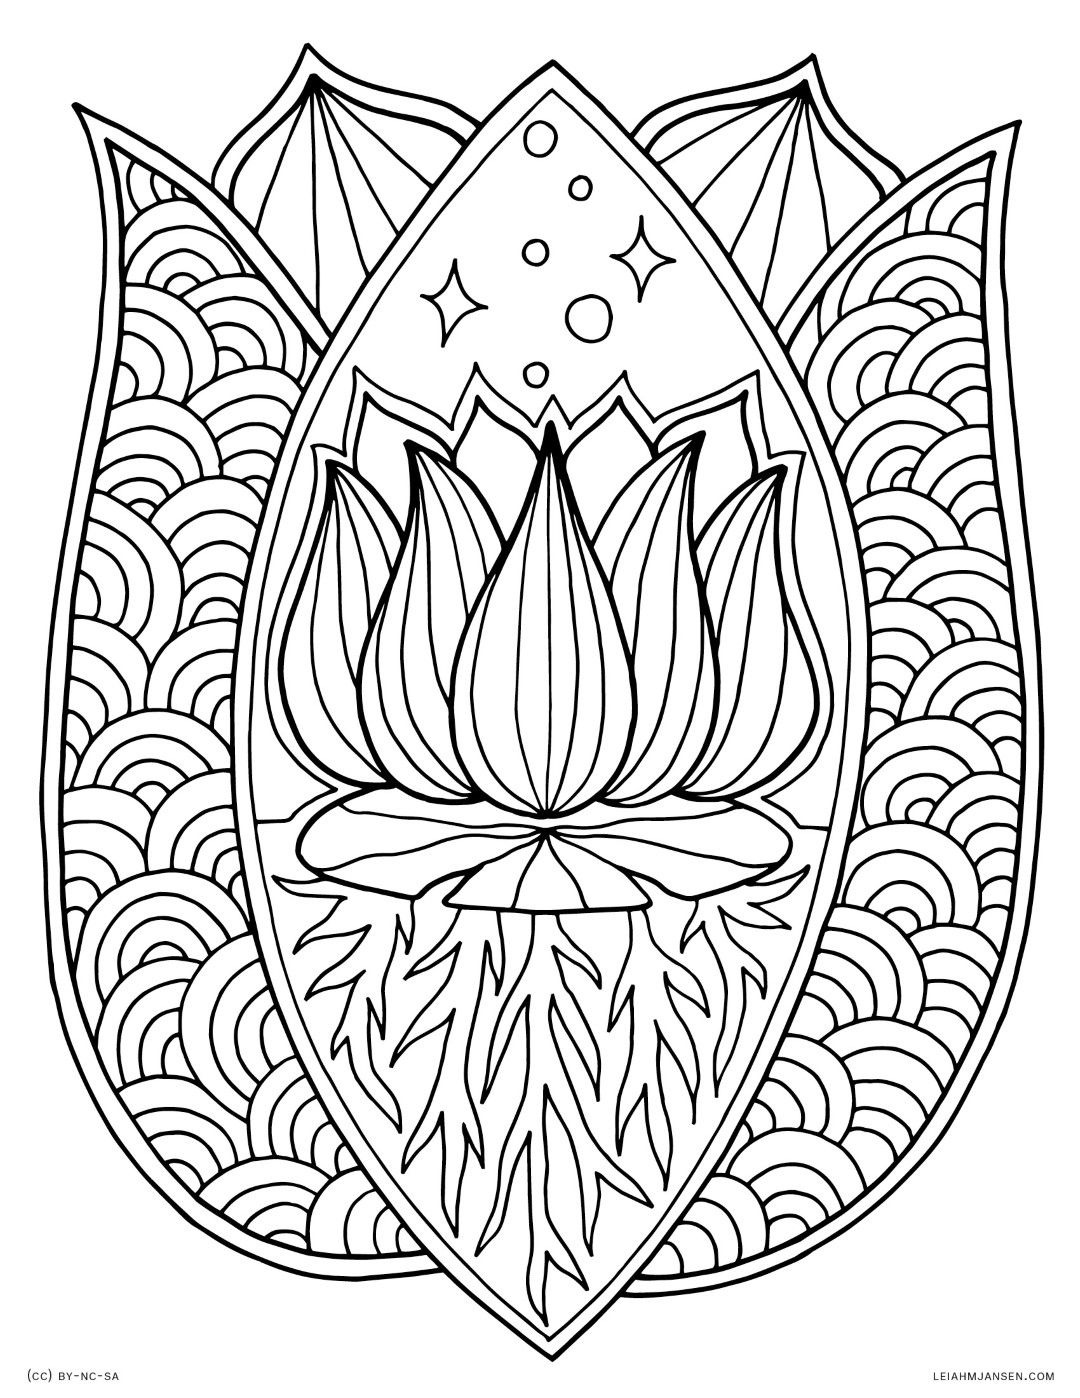 Flower Coloring Pages for Adults | Mandala coloring pages ...